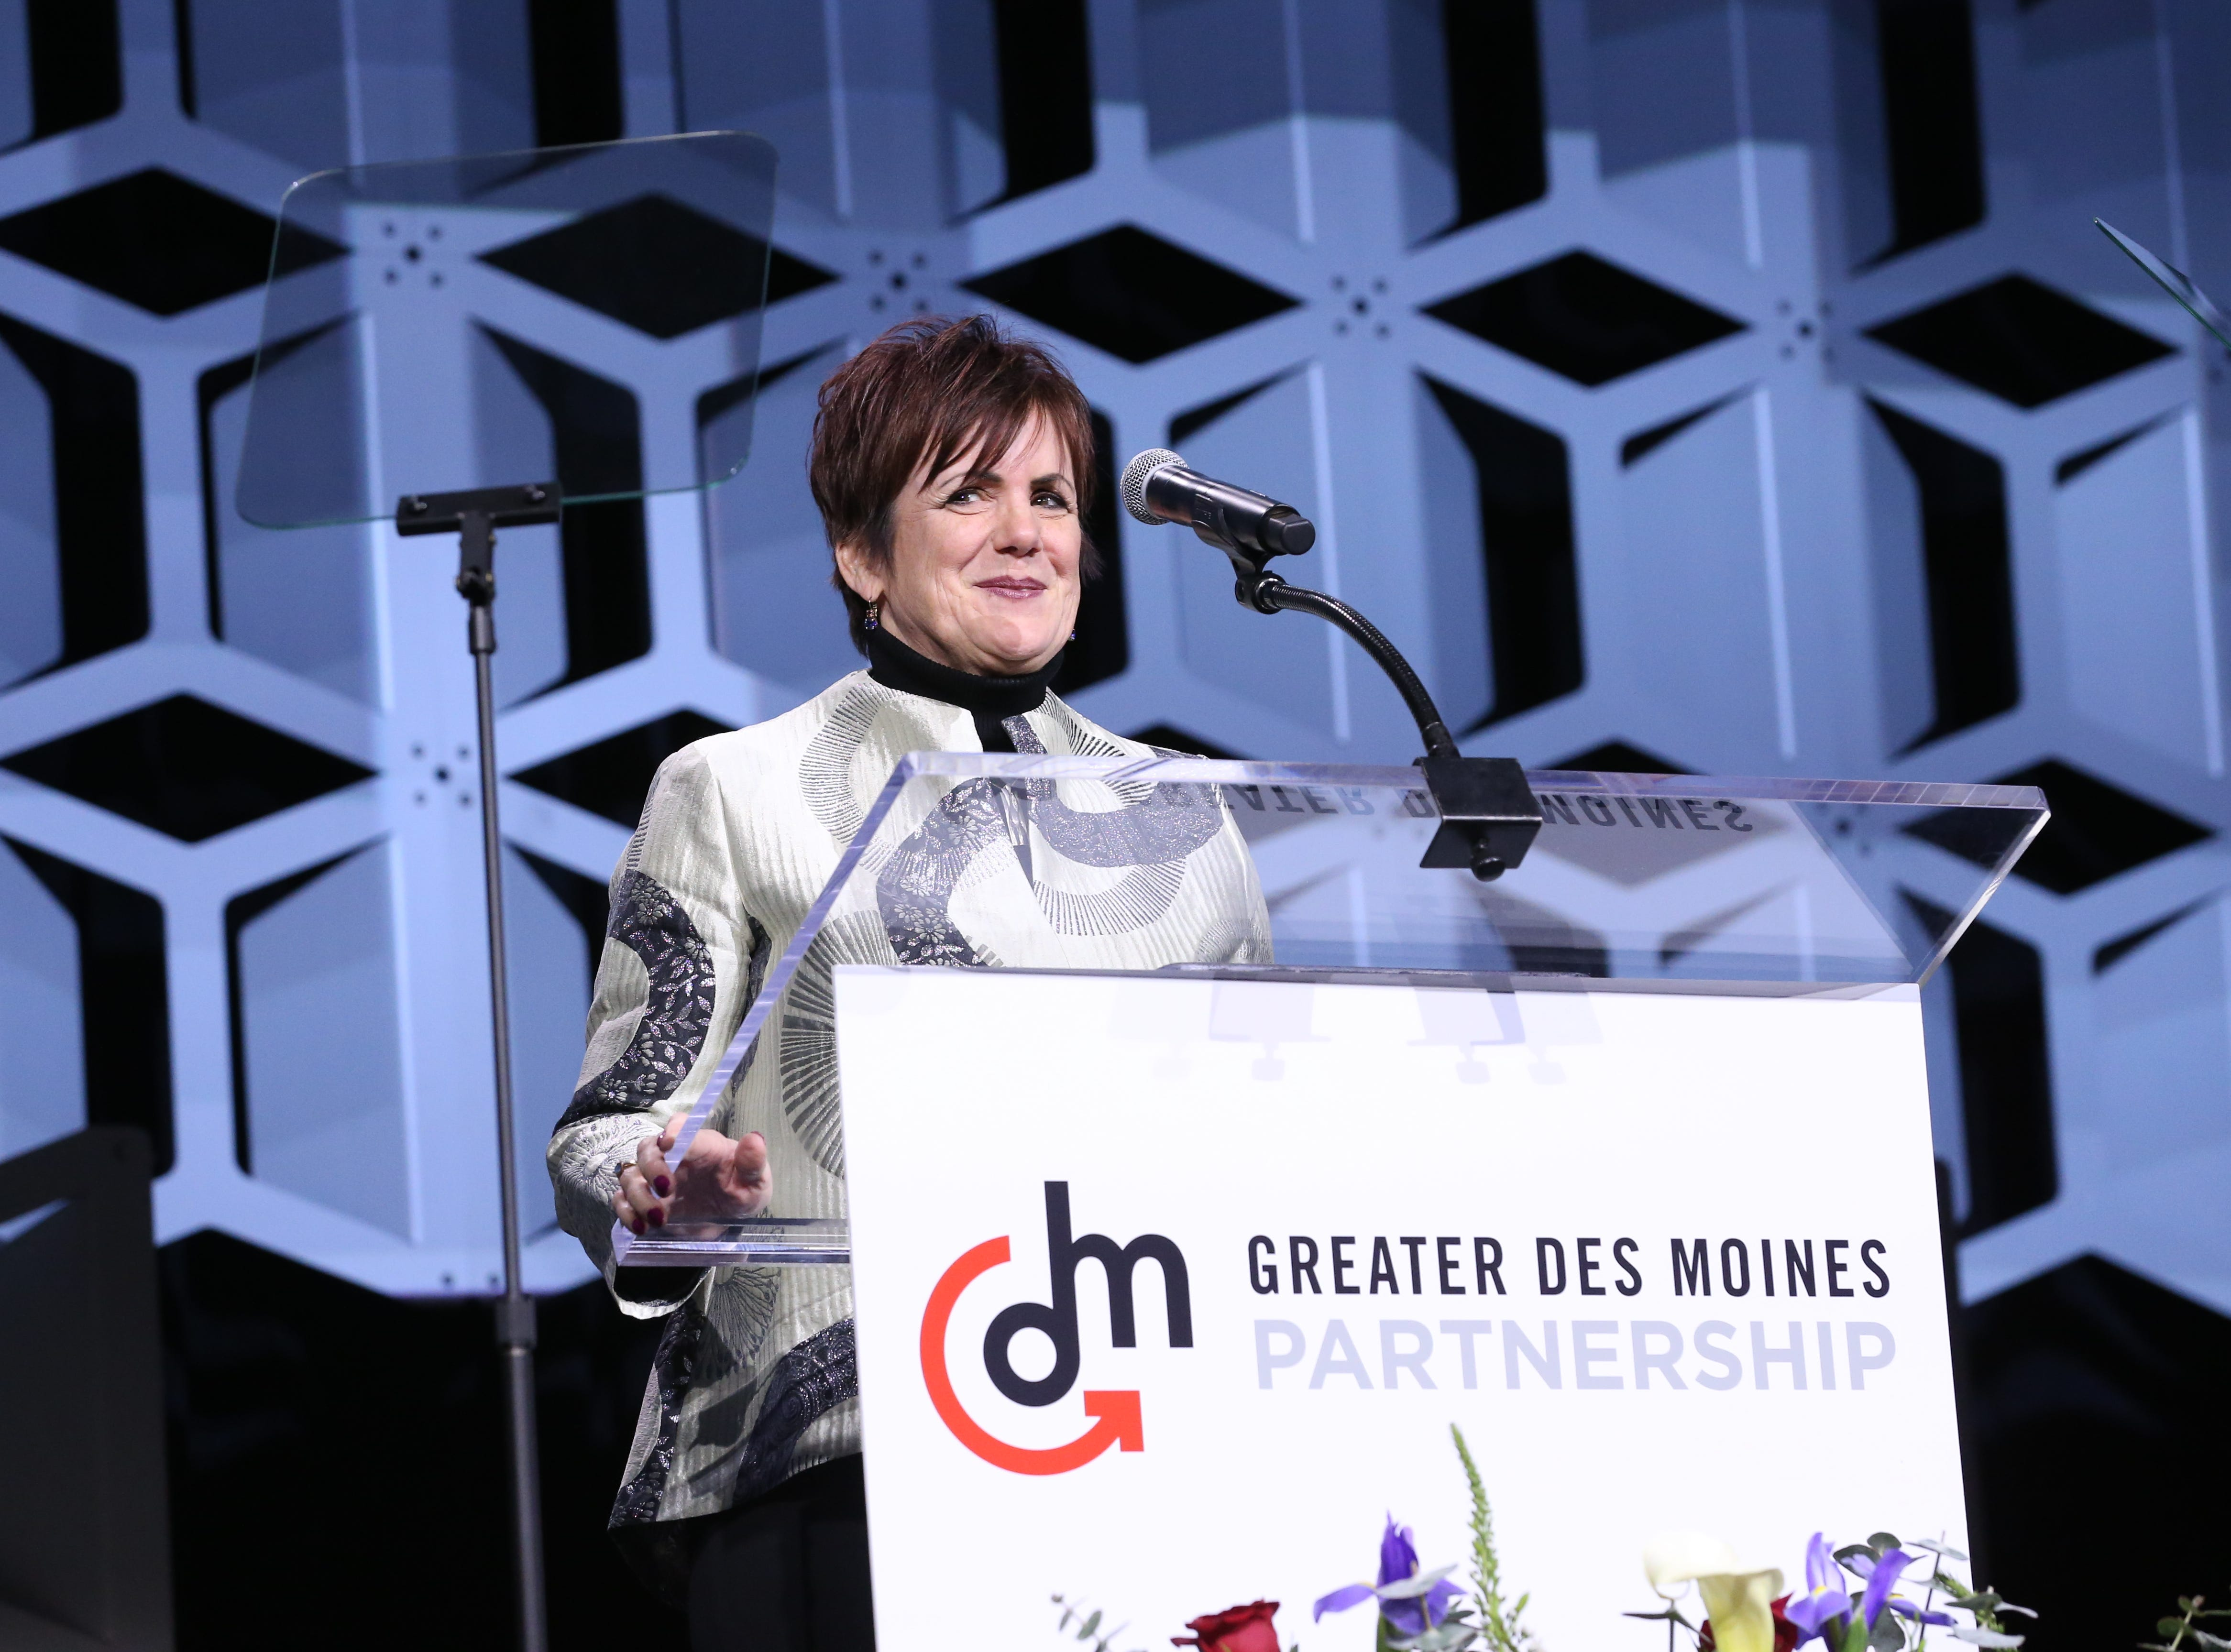 2019 Partnership Board Chair Kathryn Kunert speaks at the Partnership's Annual Dinner on January 17, 2019 at the Iowa Events Center.